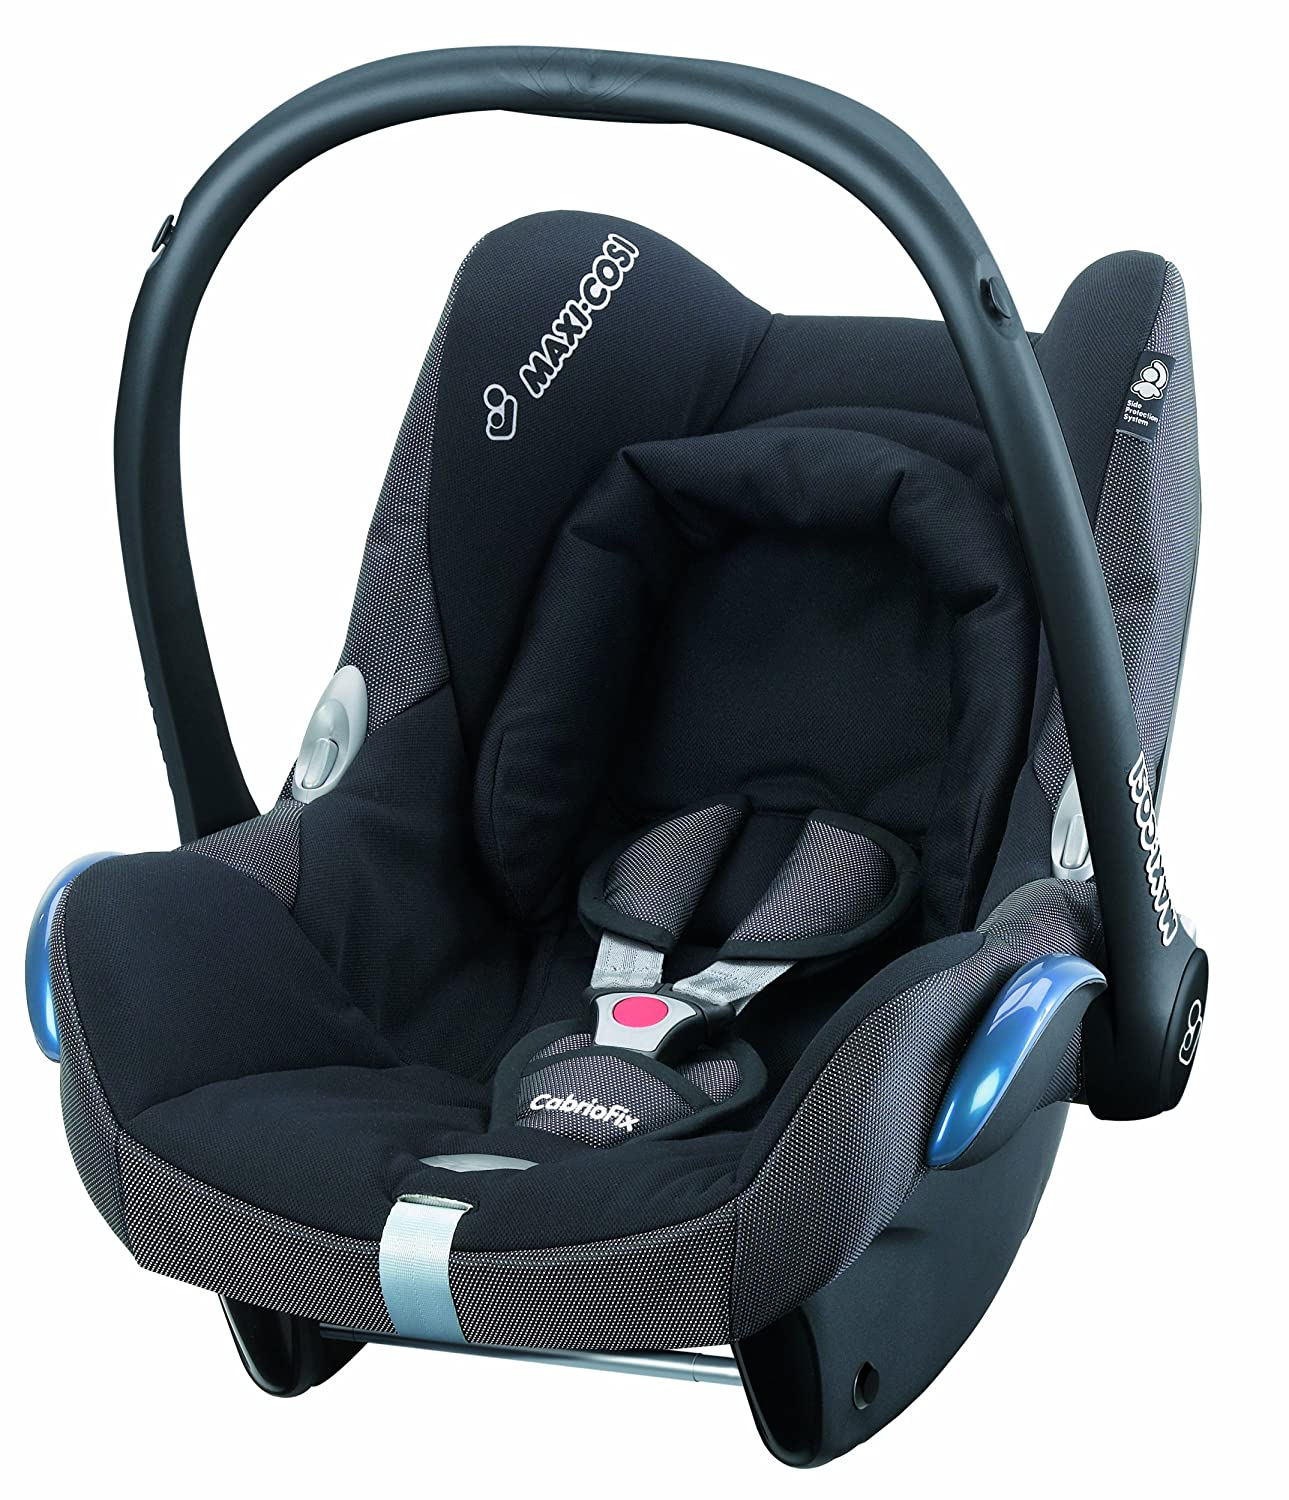 Maxi-Cosi CabrioFix Group 0+ Infant Carrier Car Seat (Black ...